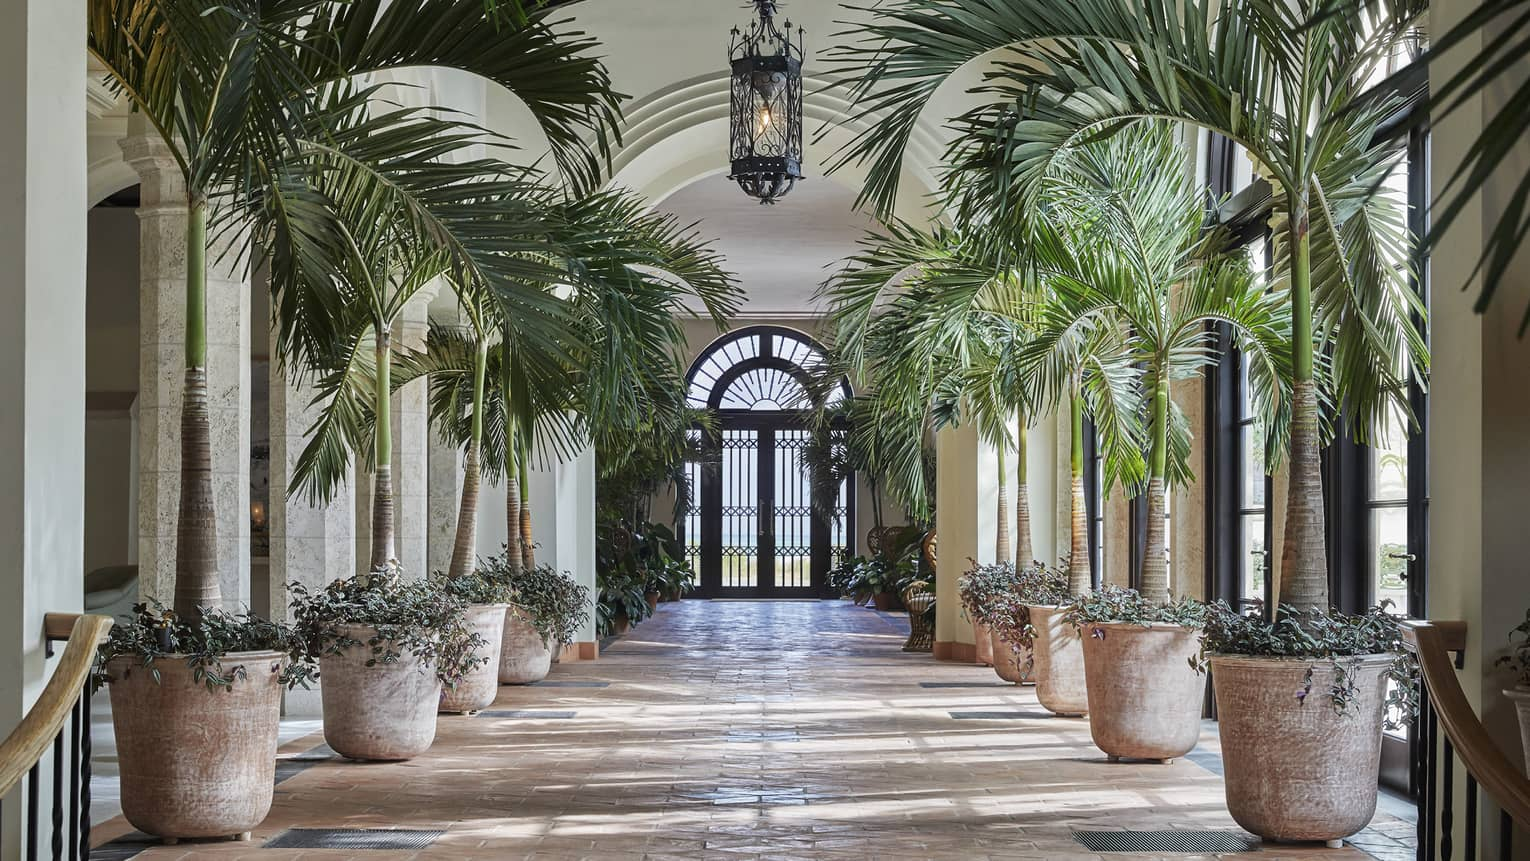 Hotel corridor flanked on either side by rows of potted palms, French doors at the far end